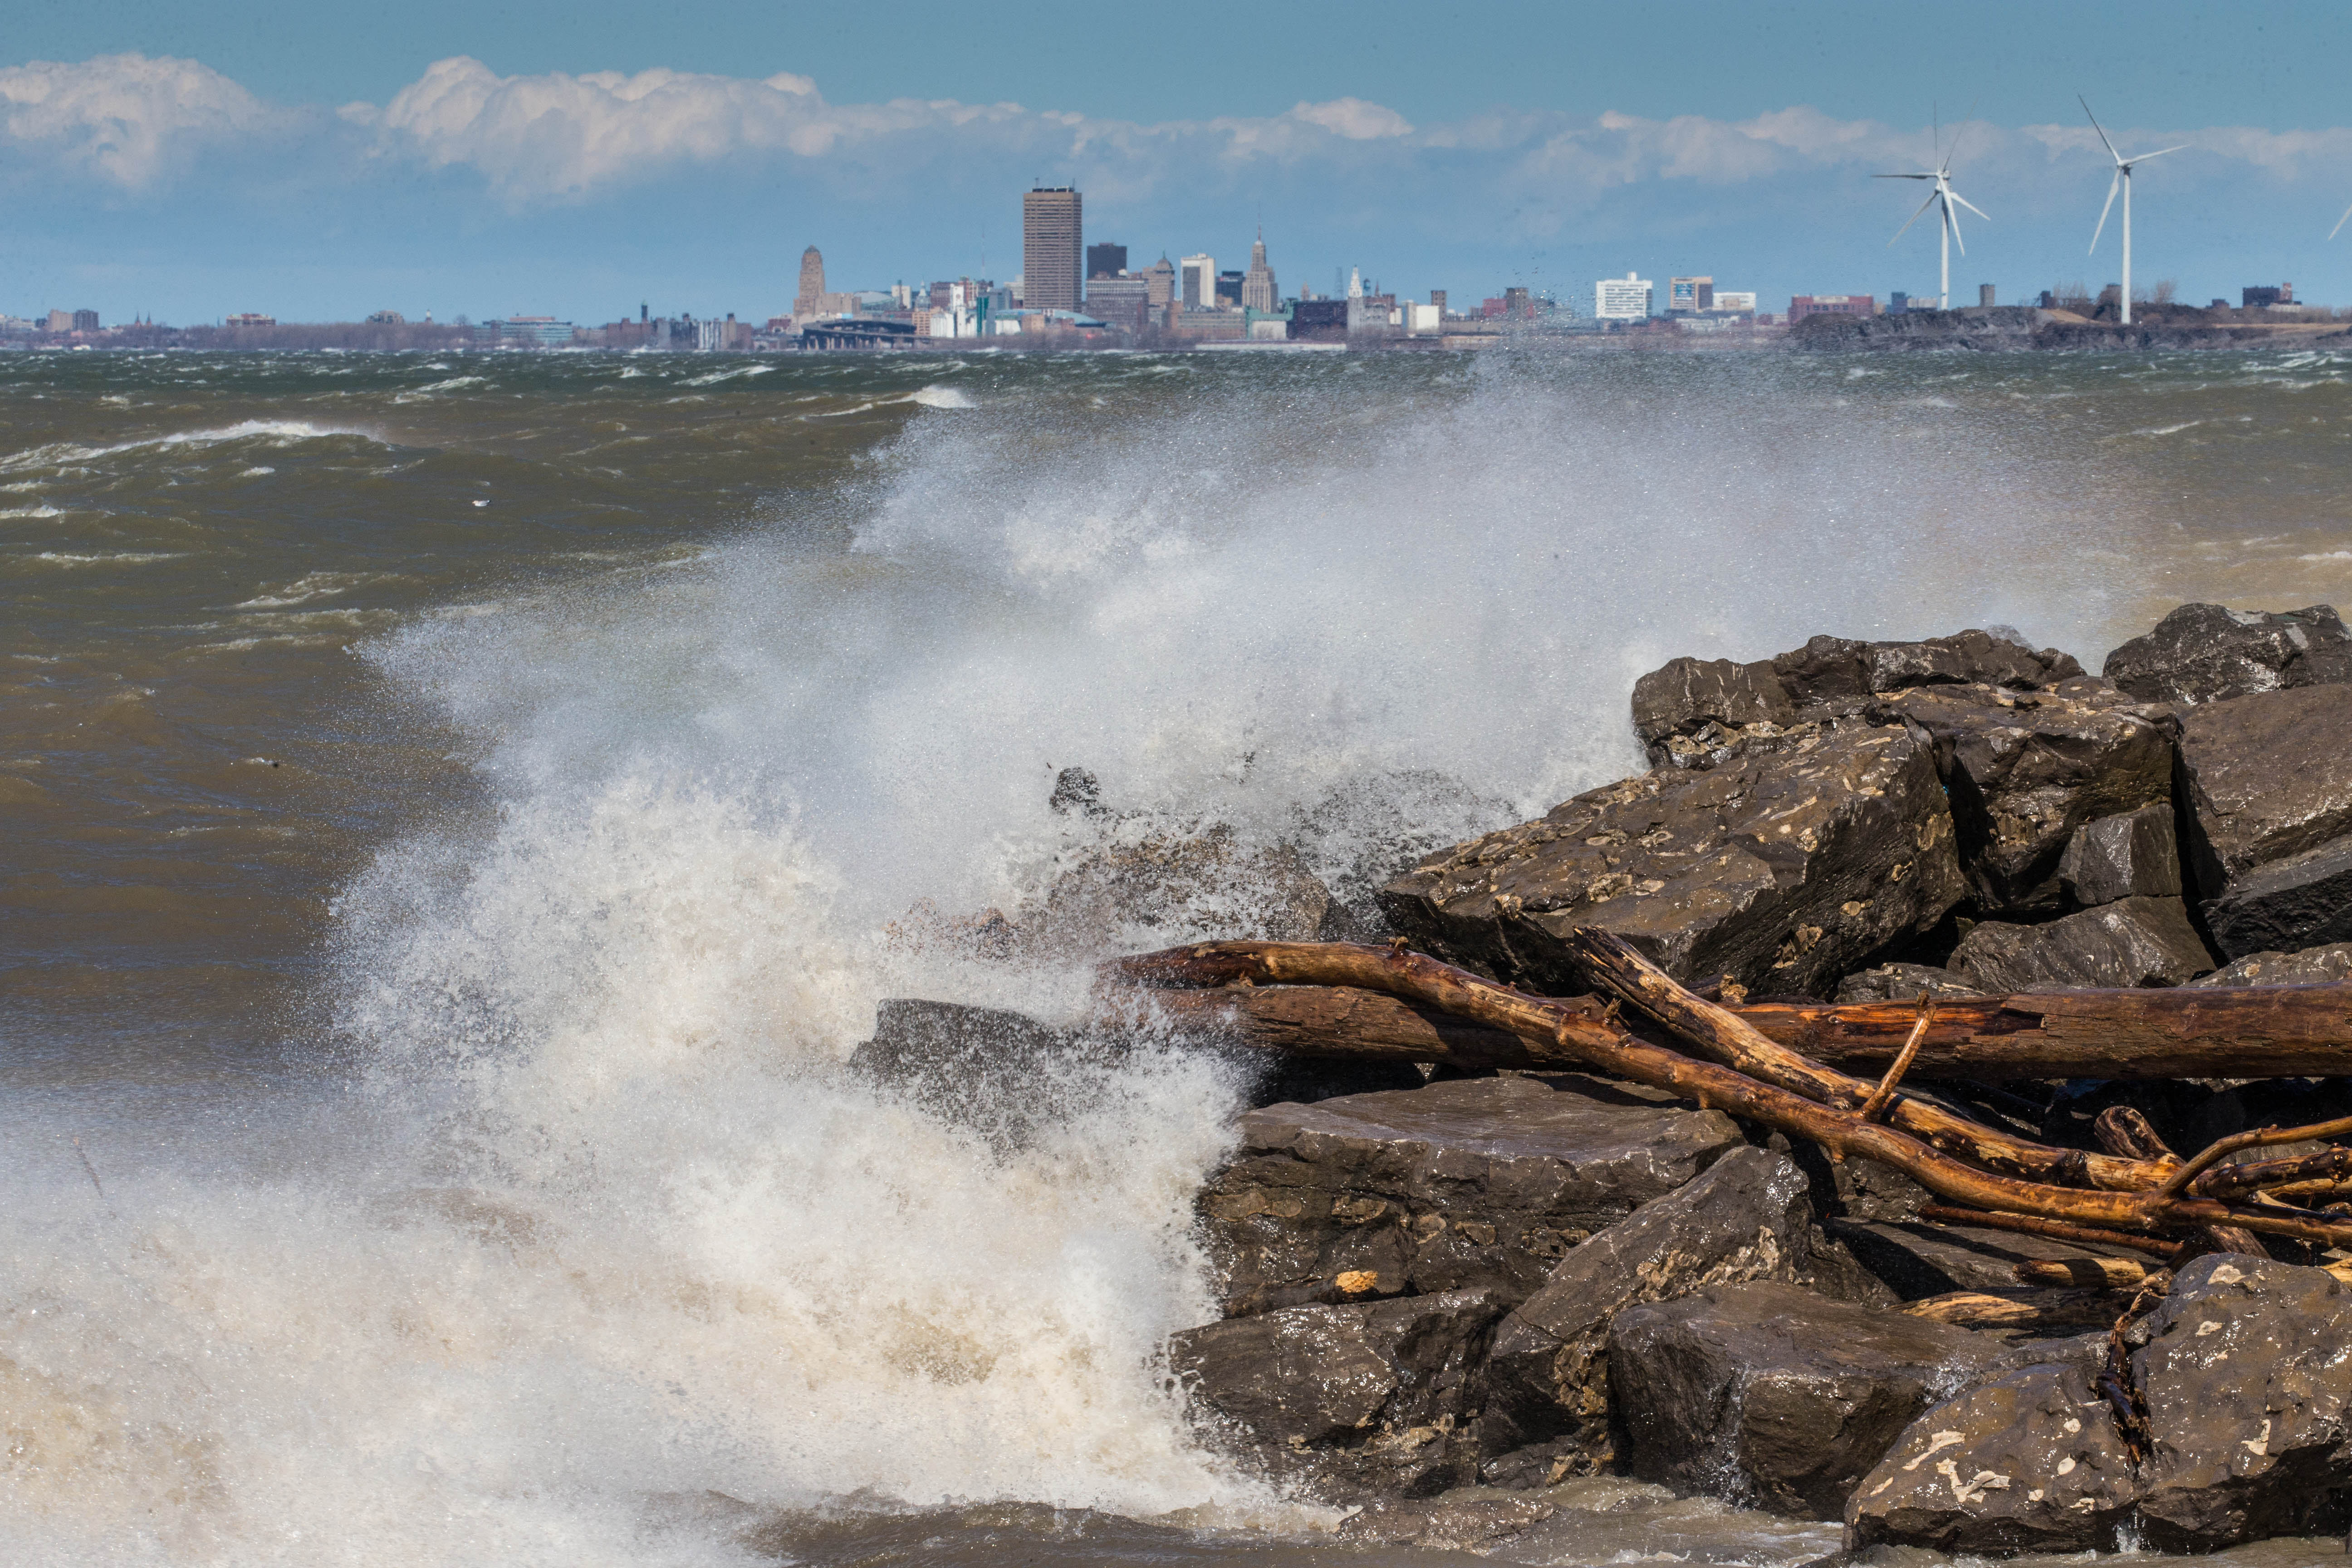 Gusty winds could help create dangerous swimming conditions at Western New York's beaches today, the National Weather Service said. (Derek Gee/Buffalo News file photo)